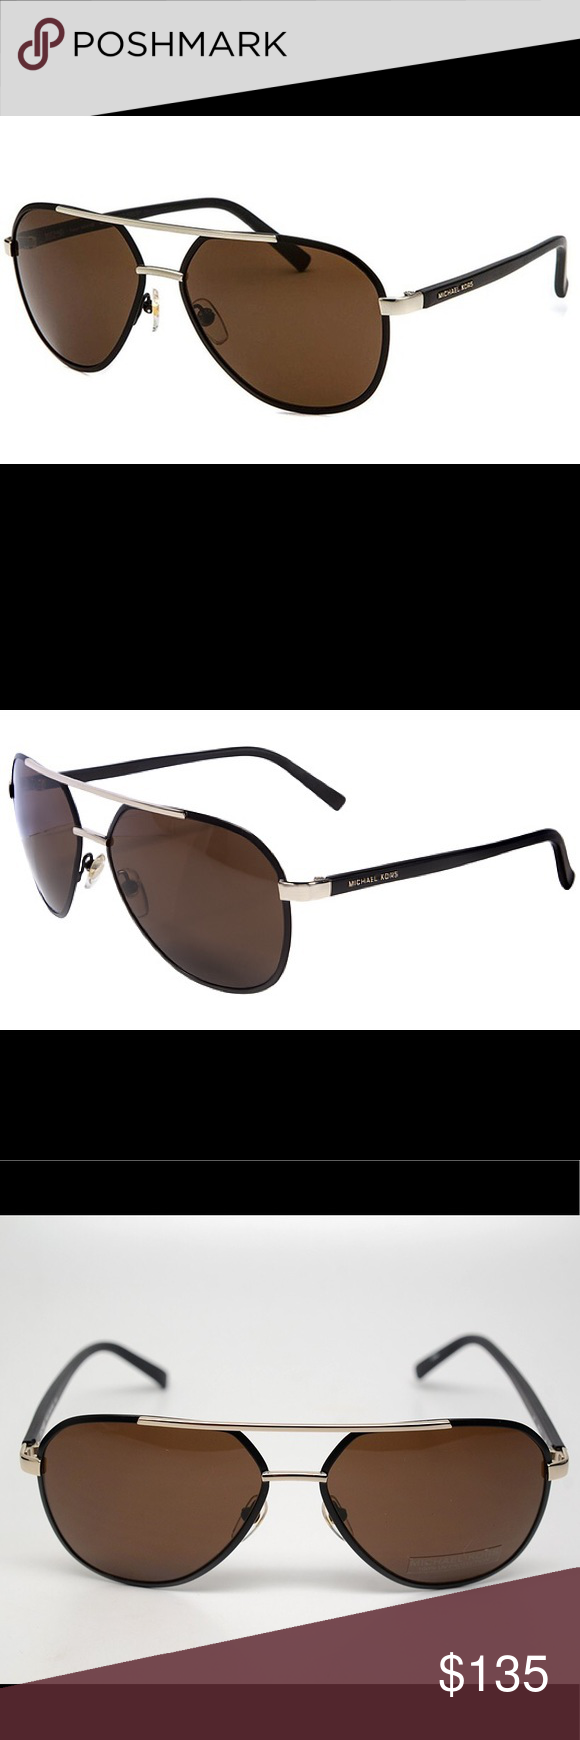 40d67b80f182 Michael Kors Sunglasses M2474S TRISTAN Black Authentic Michael By Micheal  Kors. The Michael Kors M2474S